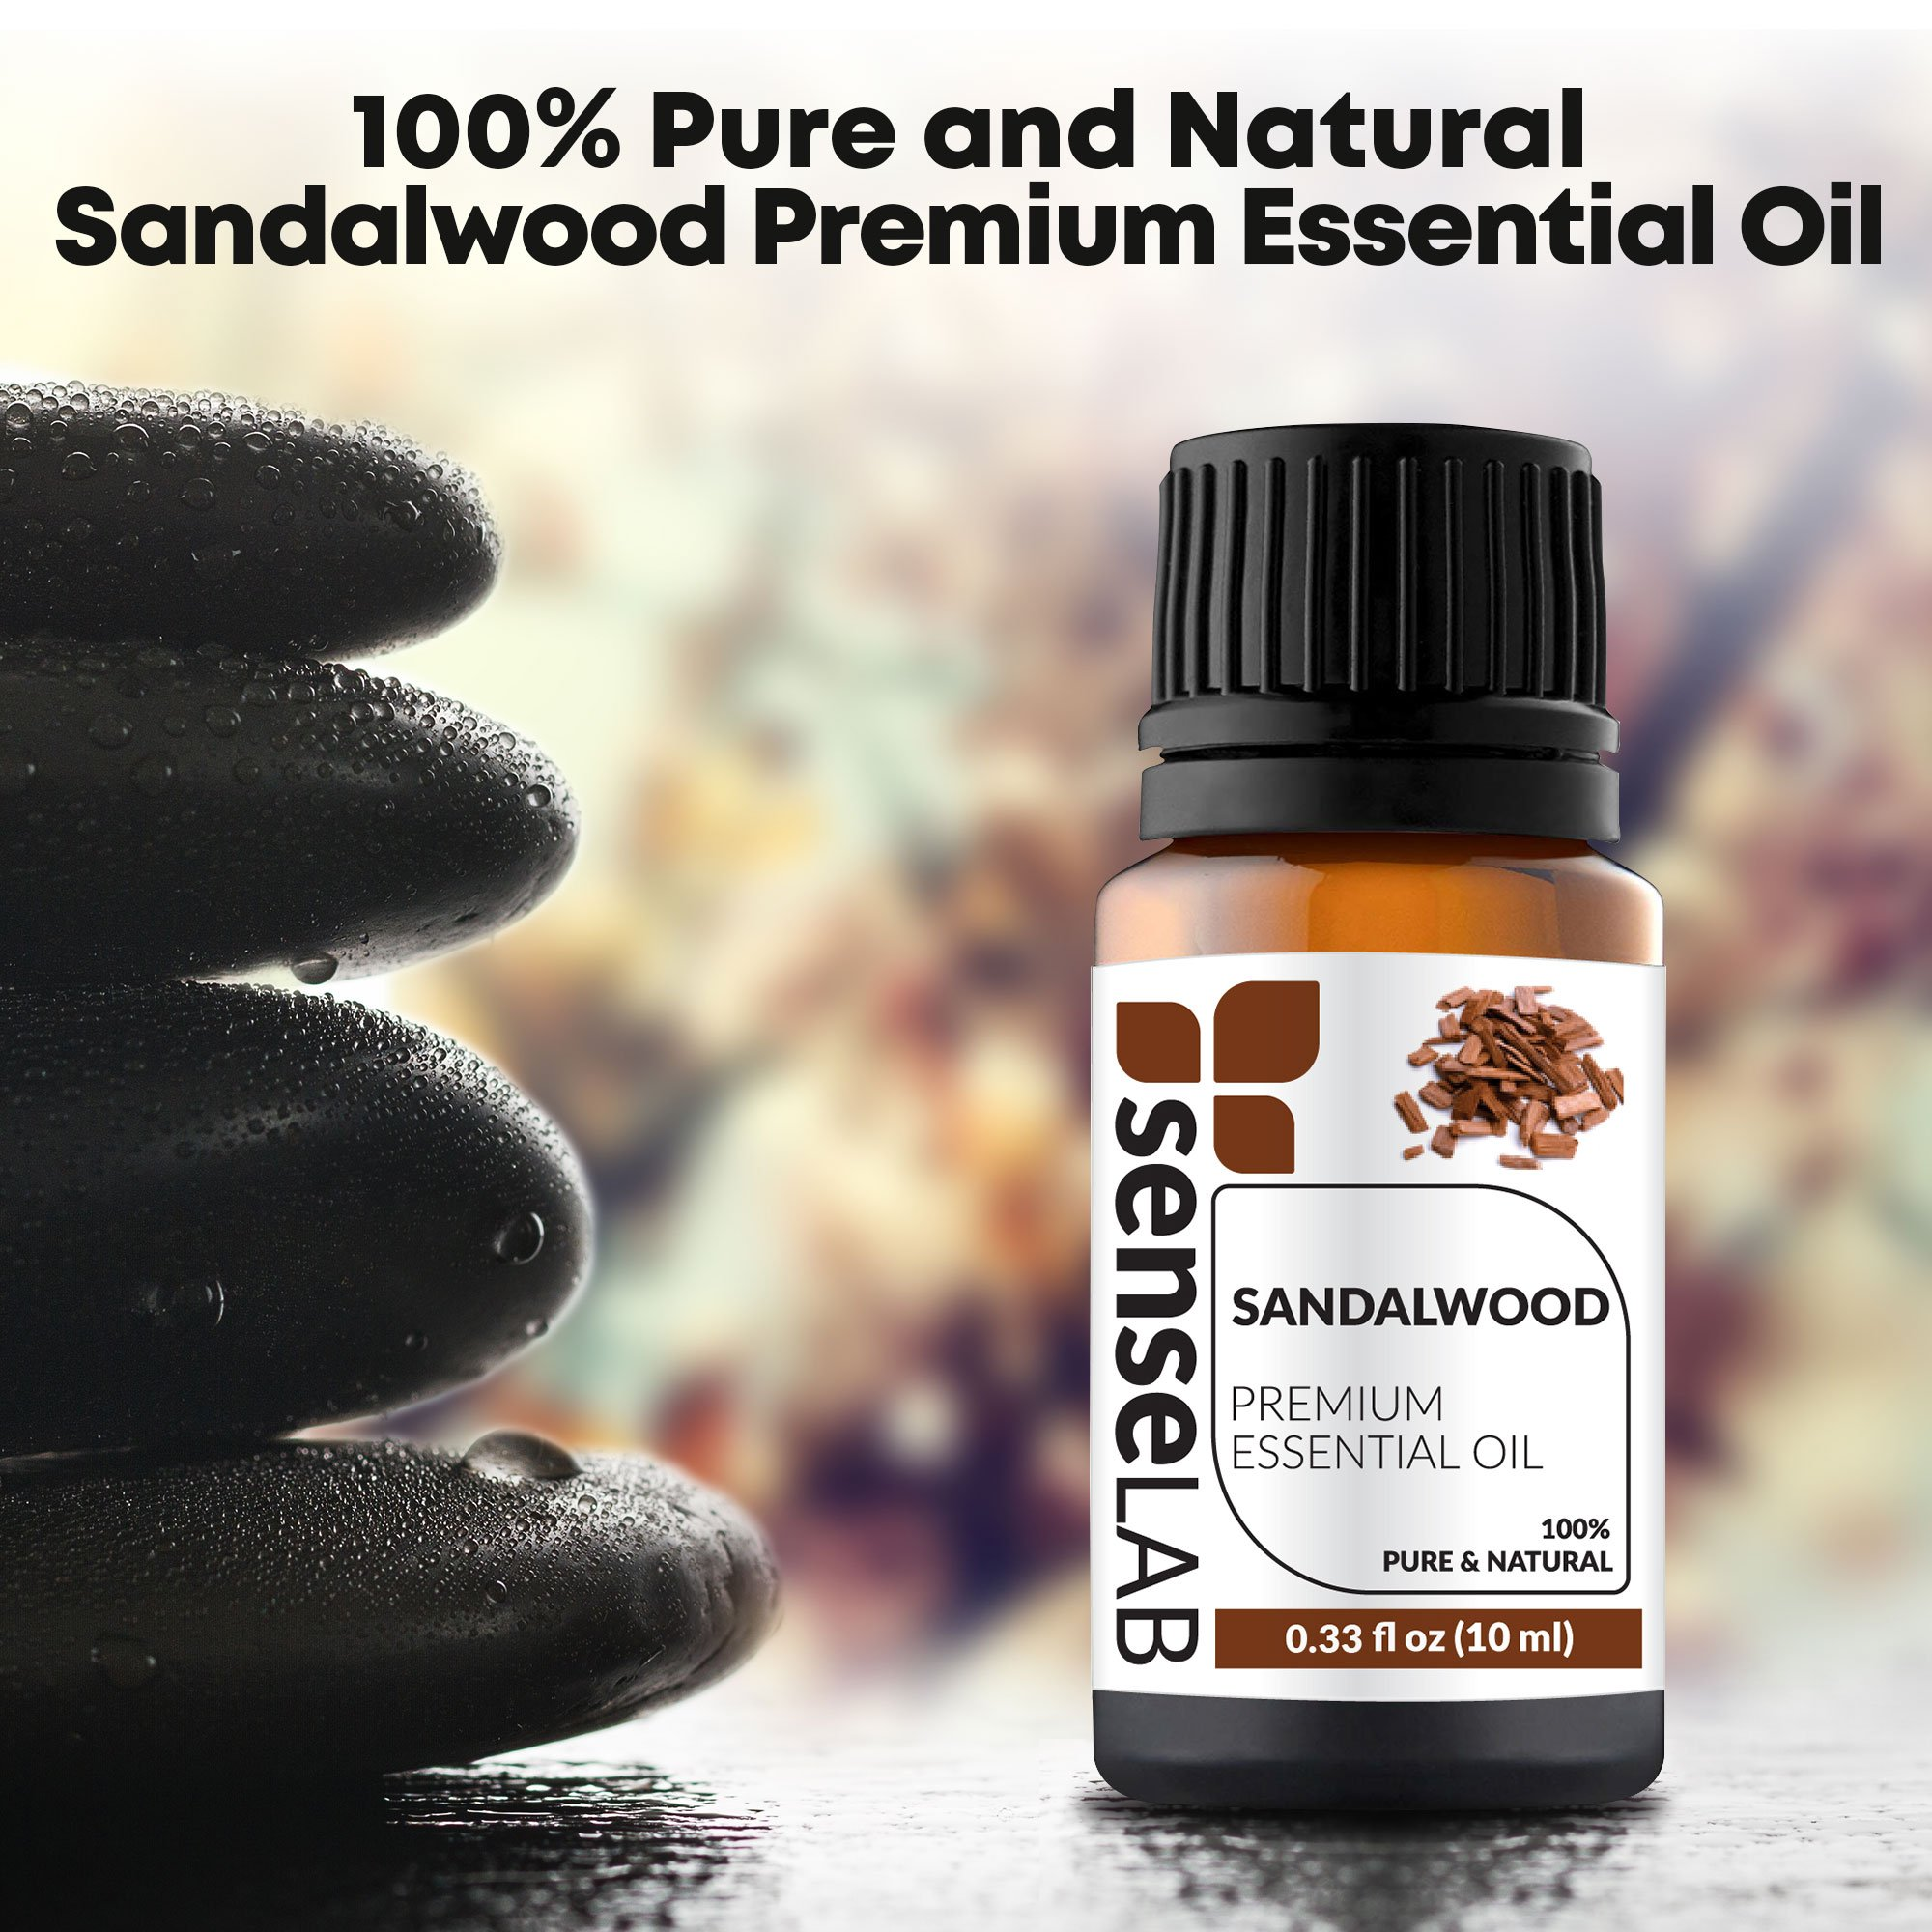 Sandalwood Essential Oil - India - by SenseLAB - 100% Pure, Natural and Highly Concentrated; Therapeutic Grade Oil 0.33 fl oz (10ml) by SENSELAB